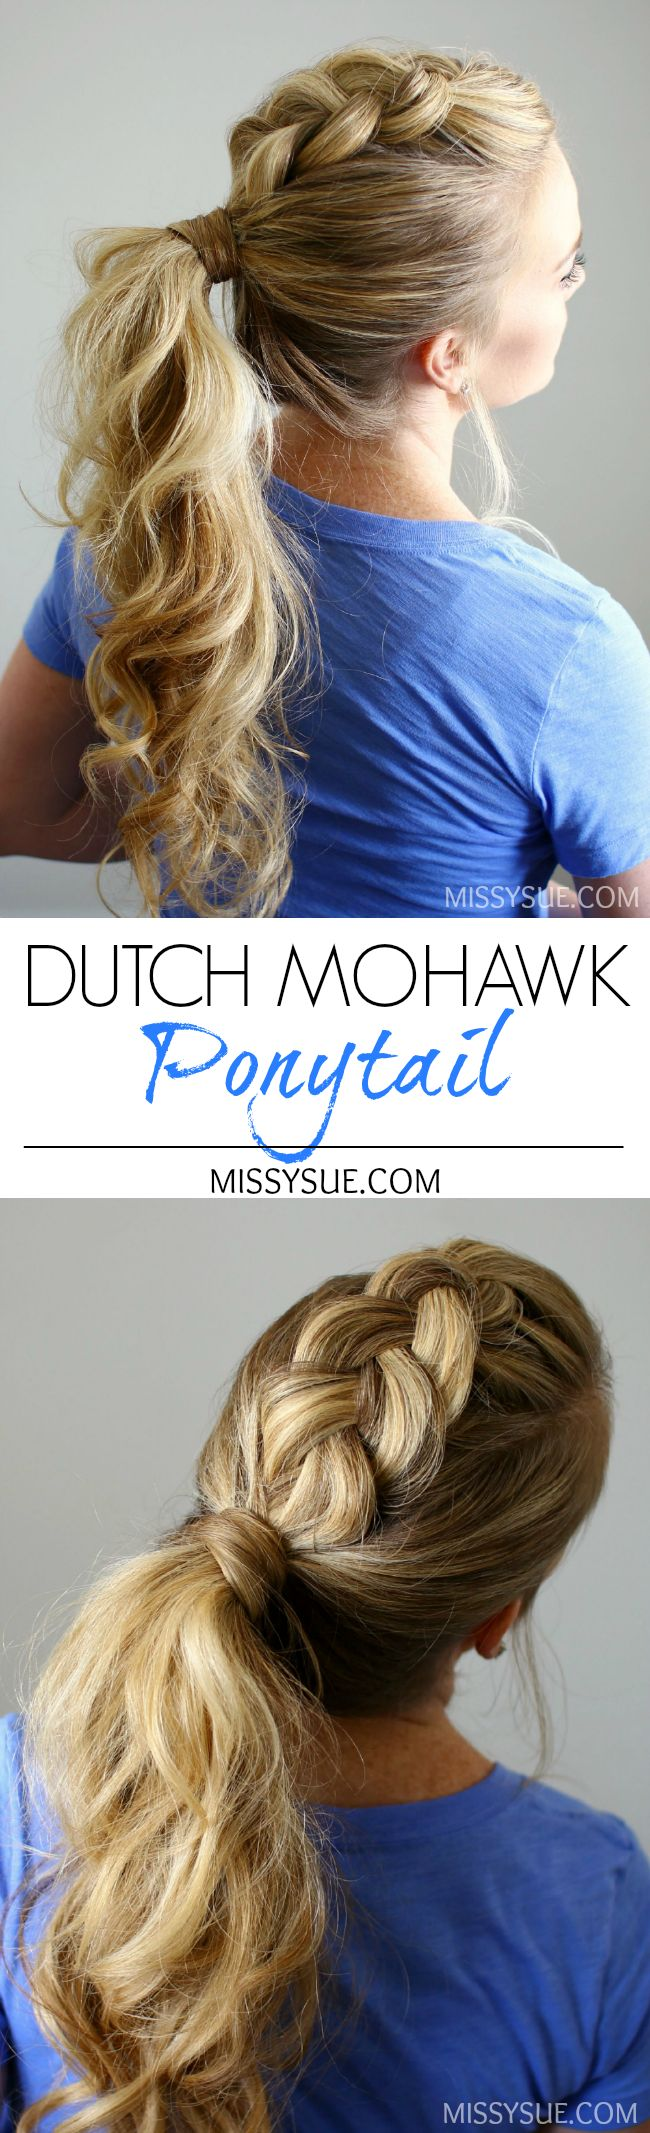 This is never going to happen. But it's gorgeous and I may try it.  dutch-mohawk-ponytail-tutorial-missysue